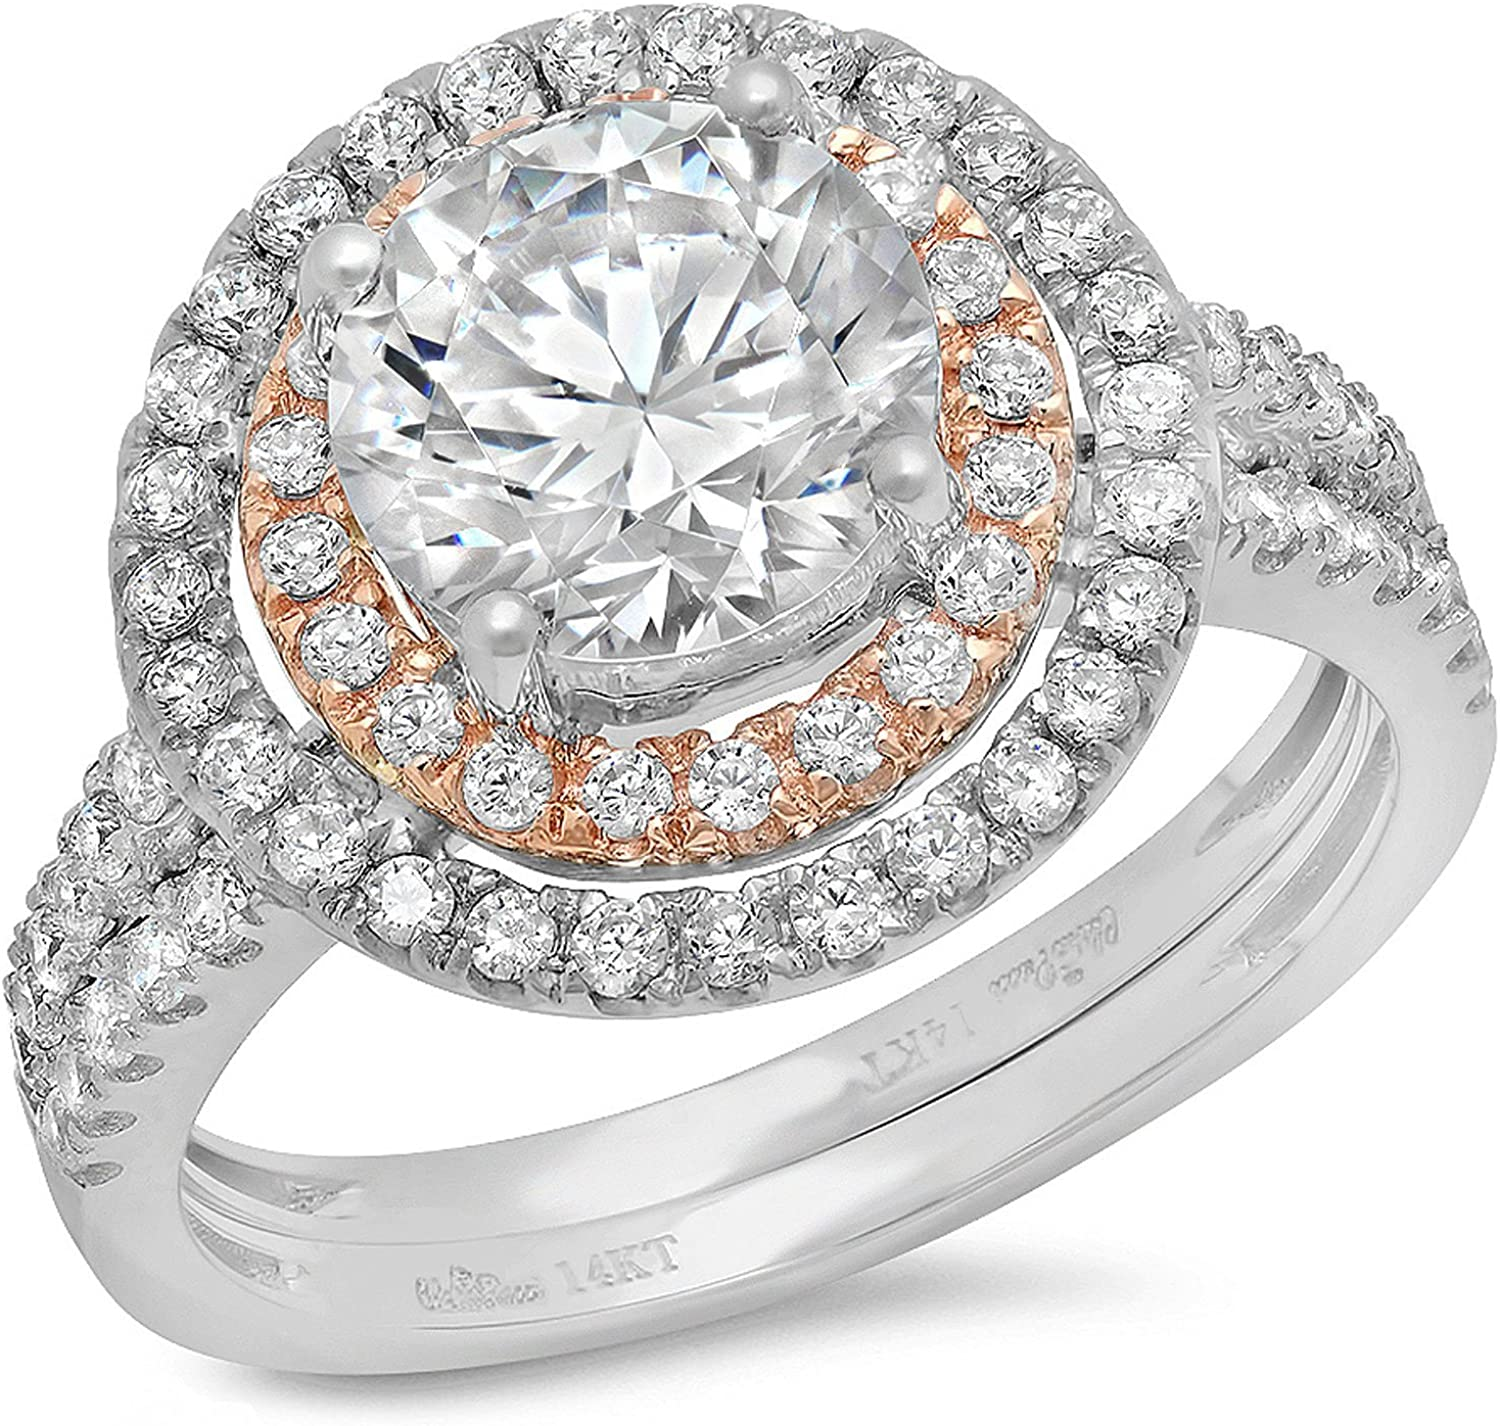 2.95ct Round Cut Halo Pave Solitaire Halo Accent Stunning Genuine Moissanite & Simulated Diamond Engagement Promise Statement Anniversary Bridal Wedding Ring Band set Solid 14k White Rose Gold